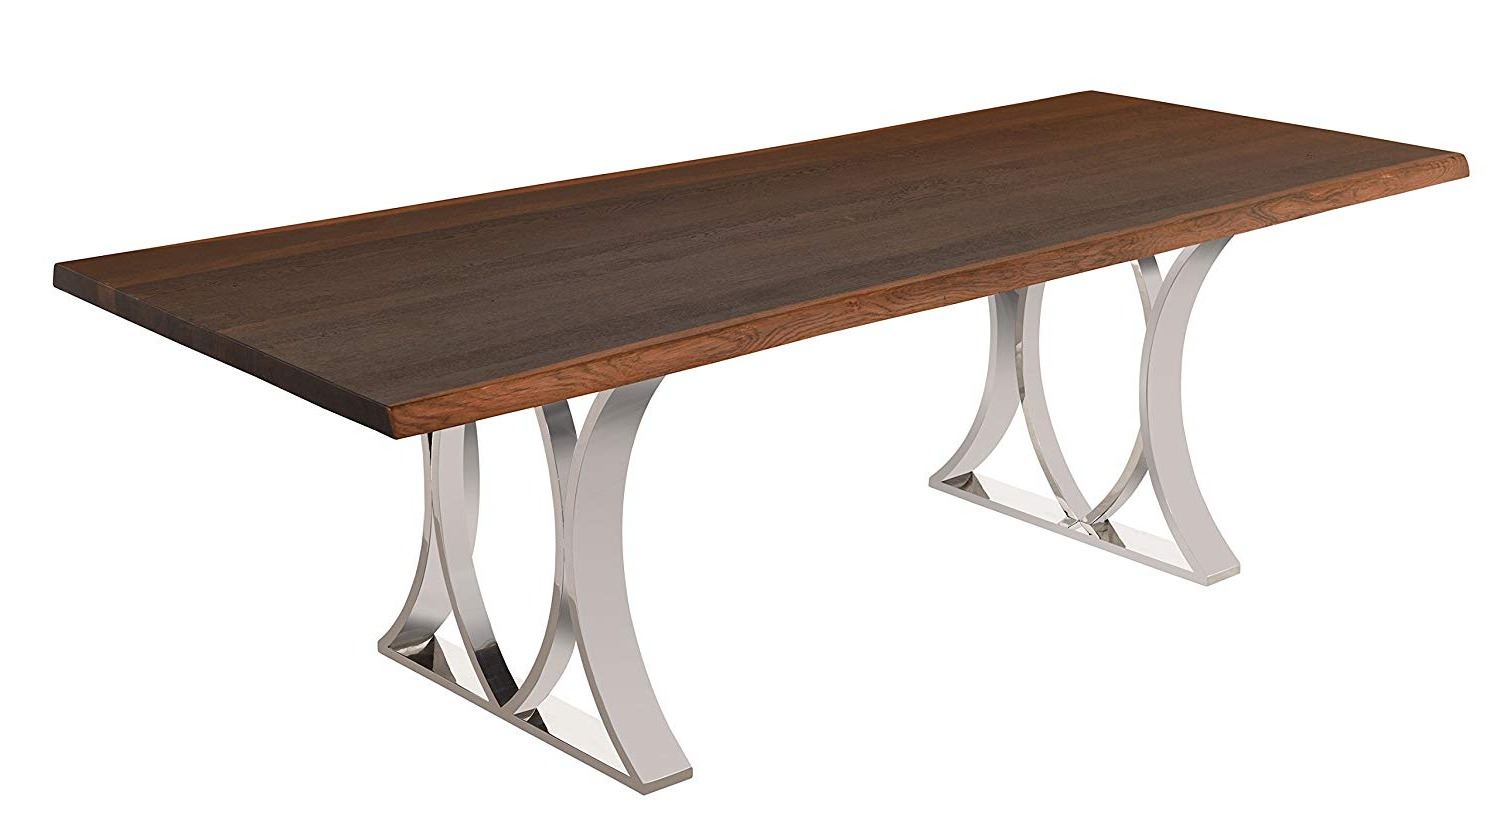 Favorite Dining Tables In Smoked Seared Oak Regarding Amazon – Nuevo Rectangular Mila Dining Table With Matte (View 8 of 30)